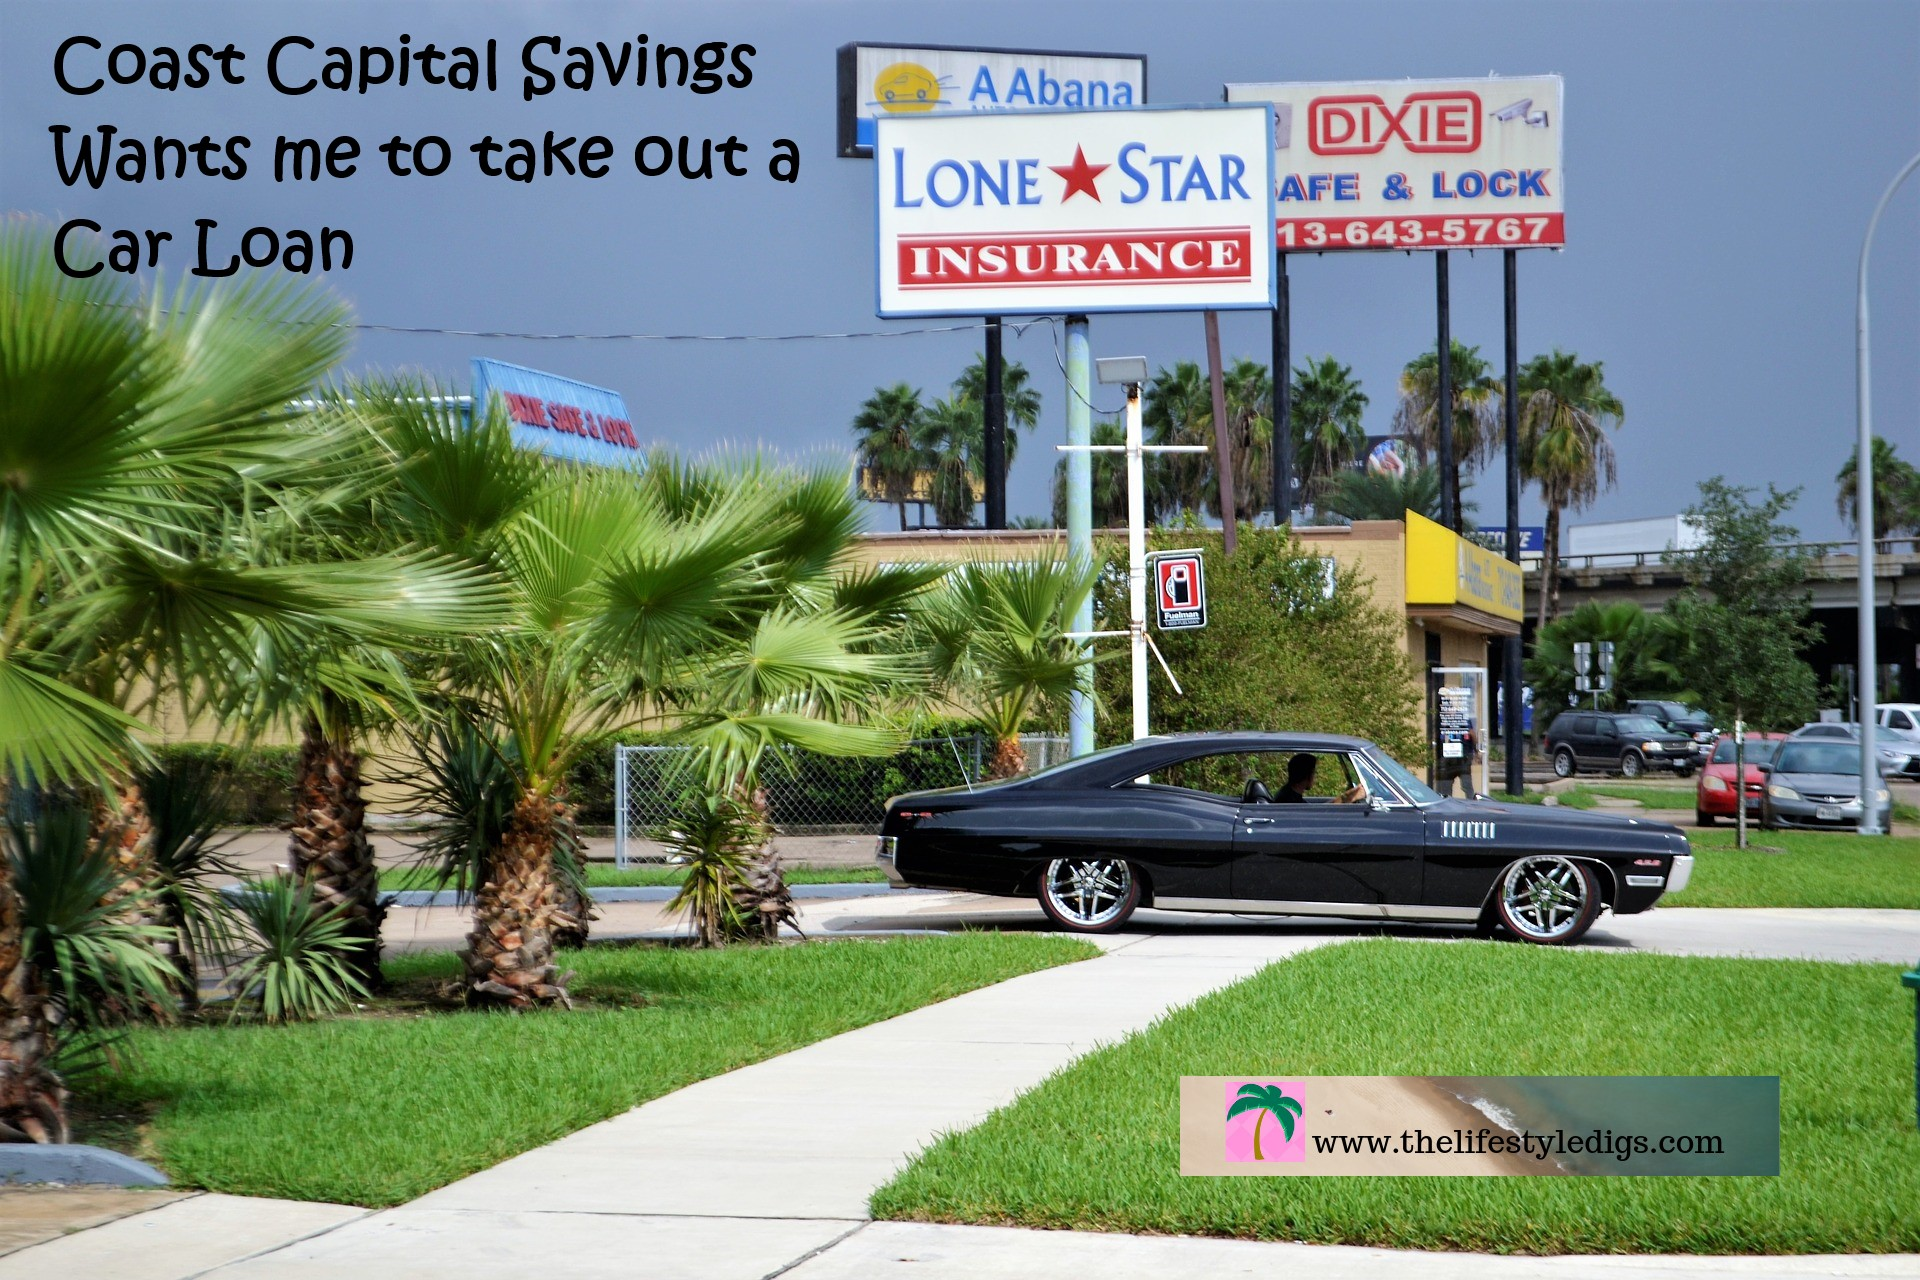 Coast Capital Savings Wants me to take out a Car Loan